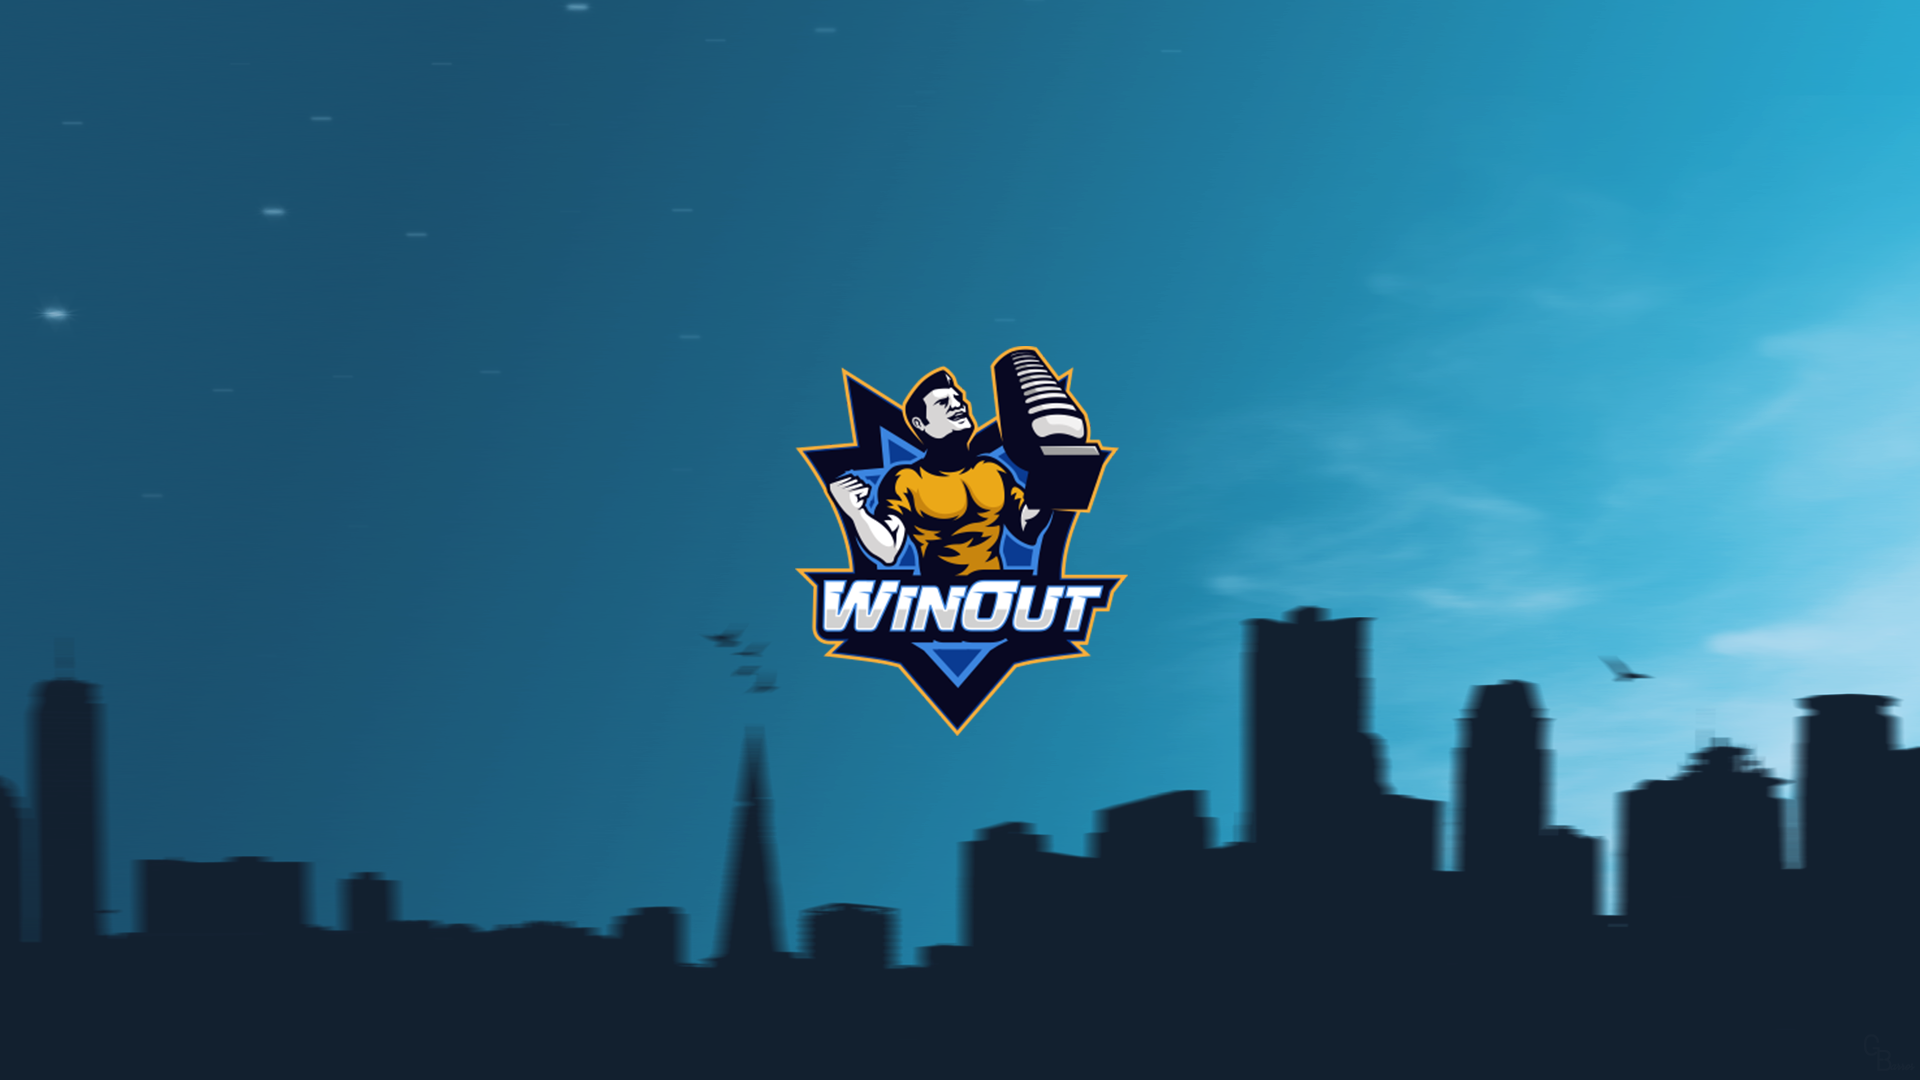 WinOut - Wallpaper